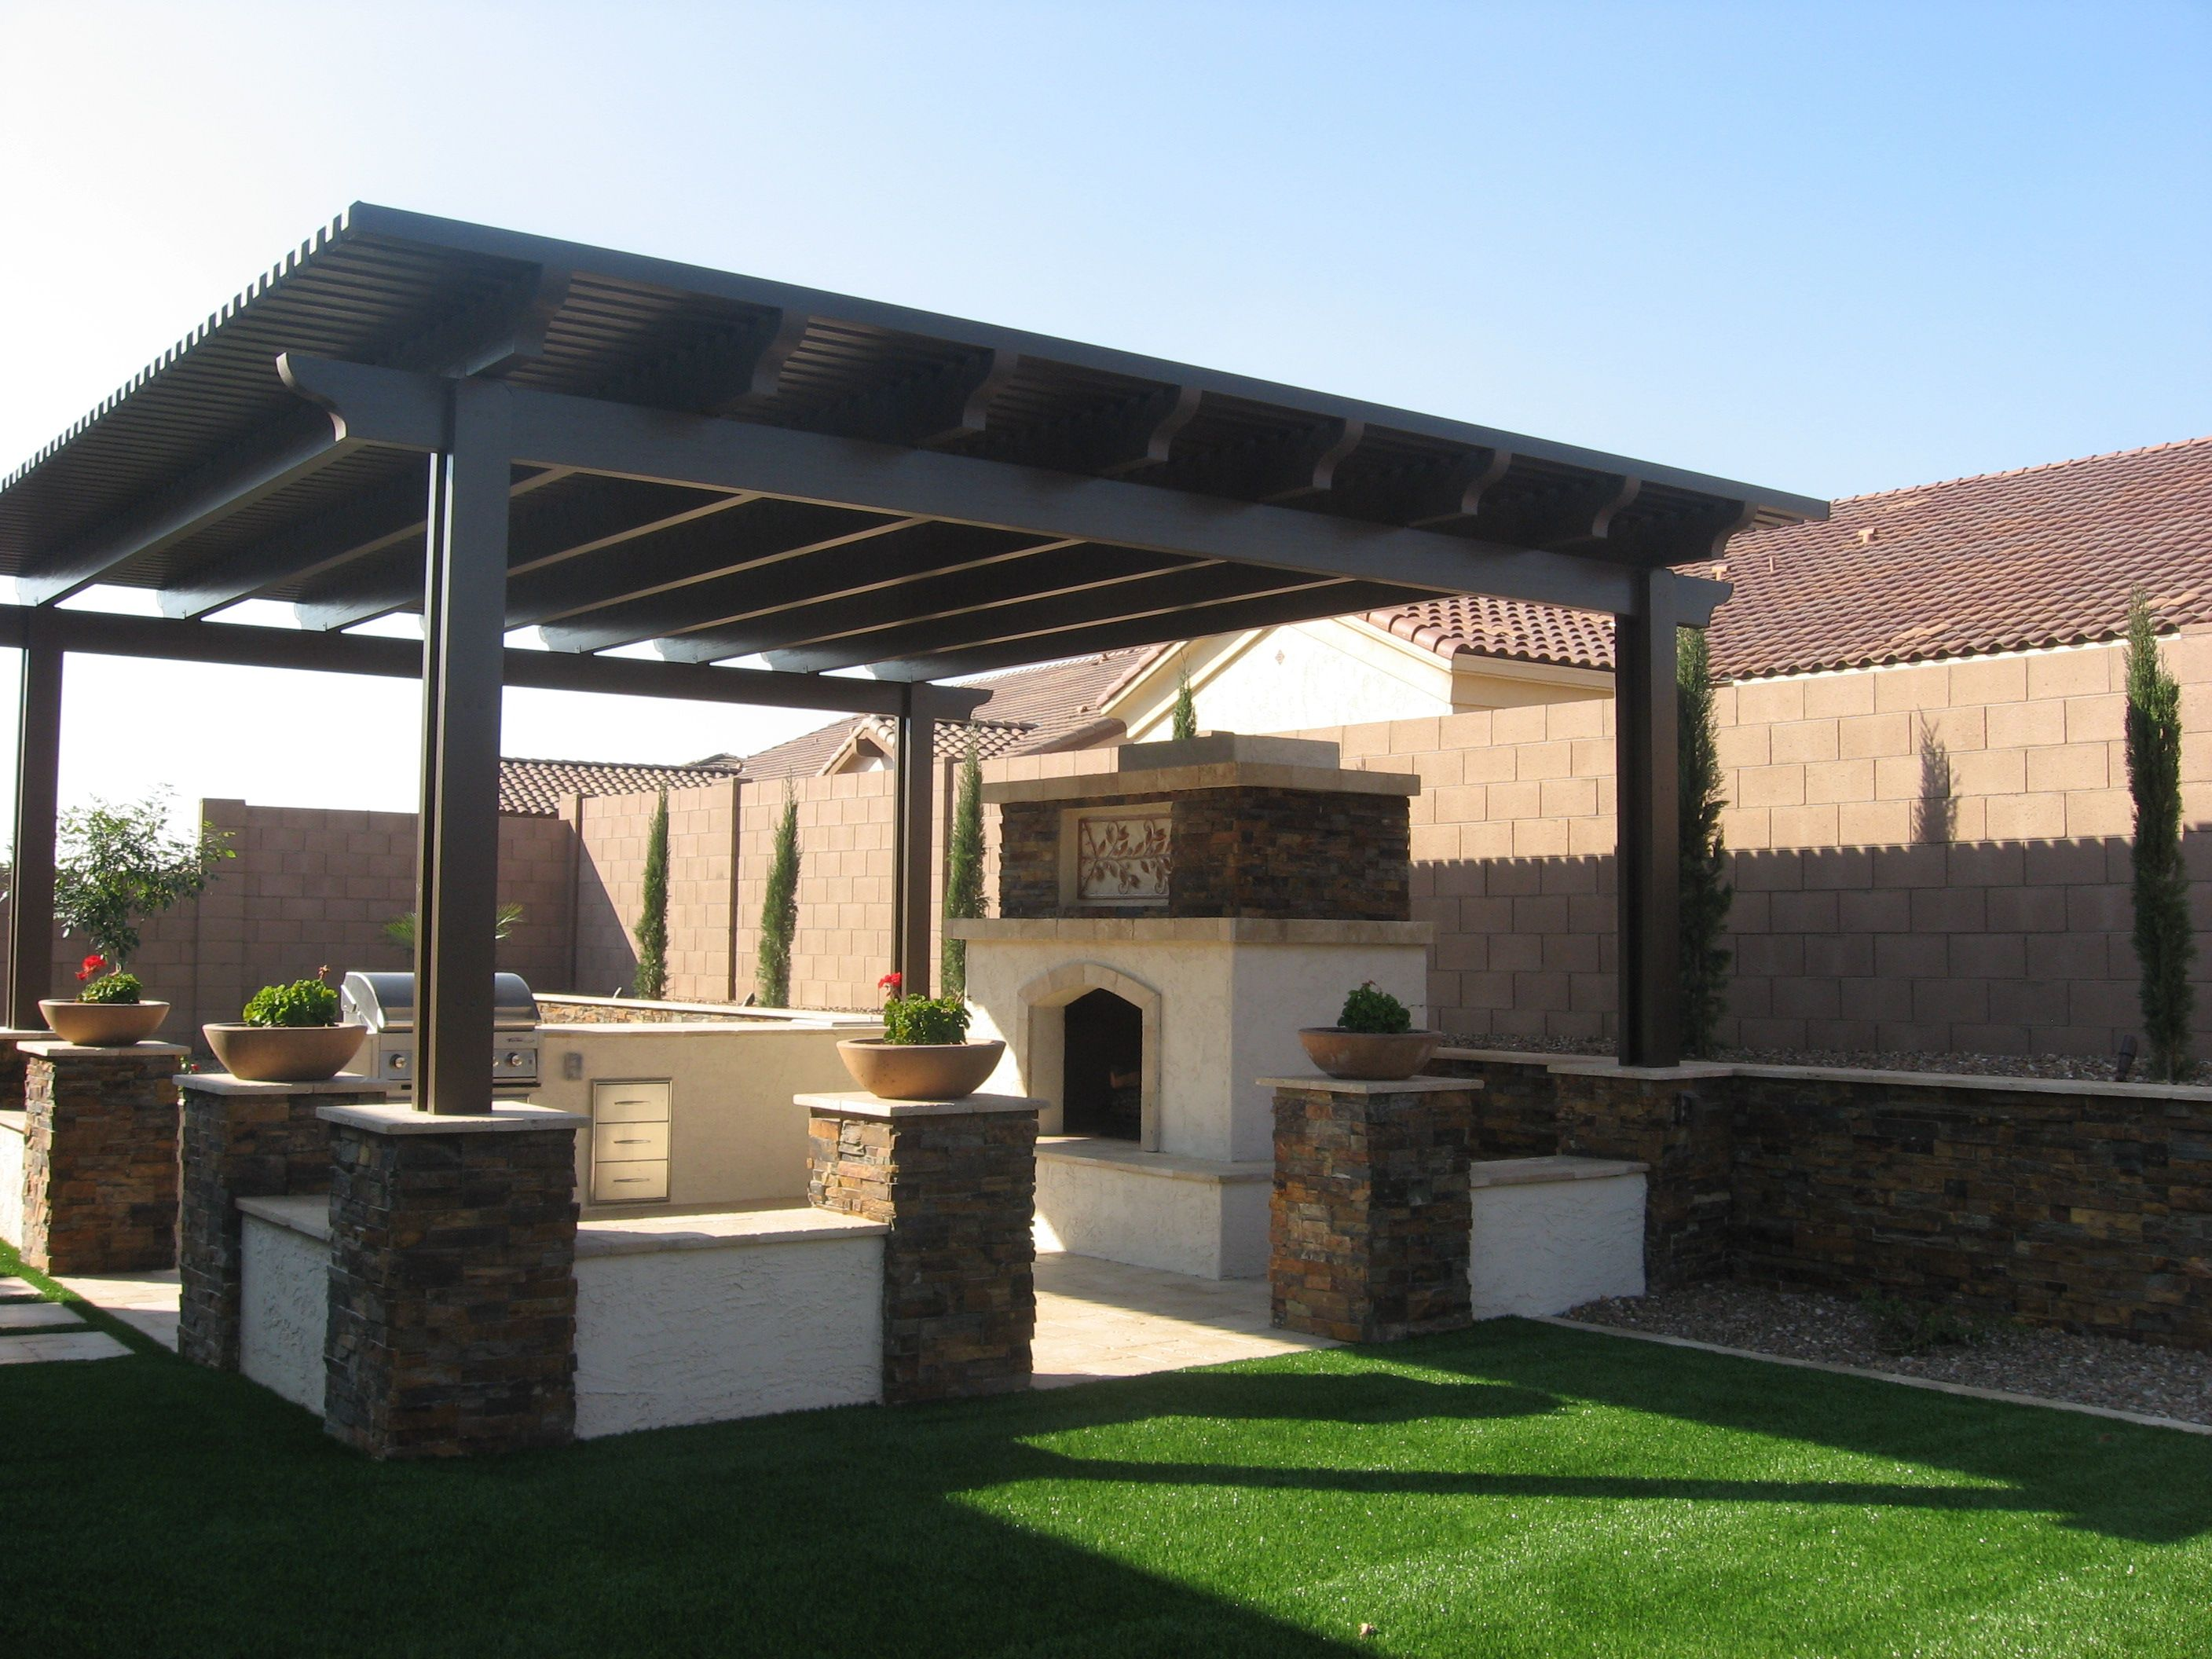 Ramada design plans designed pergolas and gazebos for for Built in gazebo